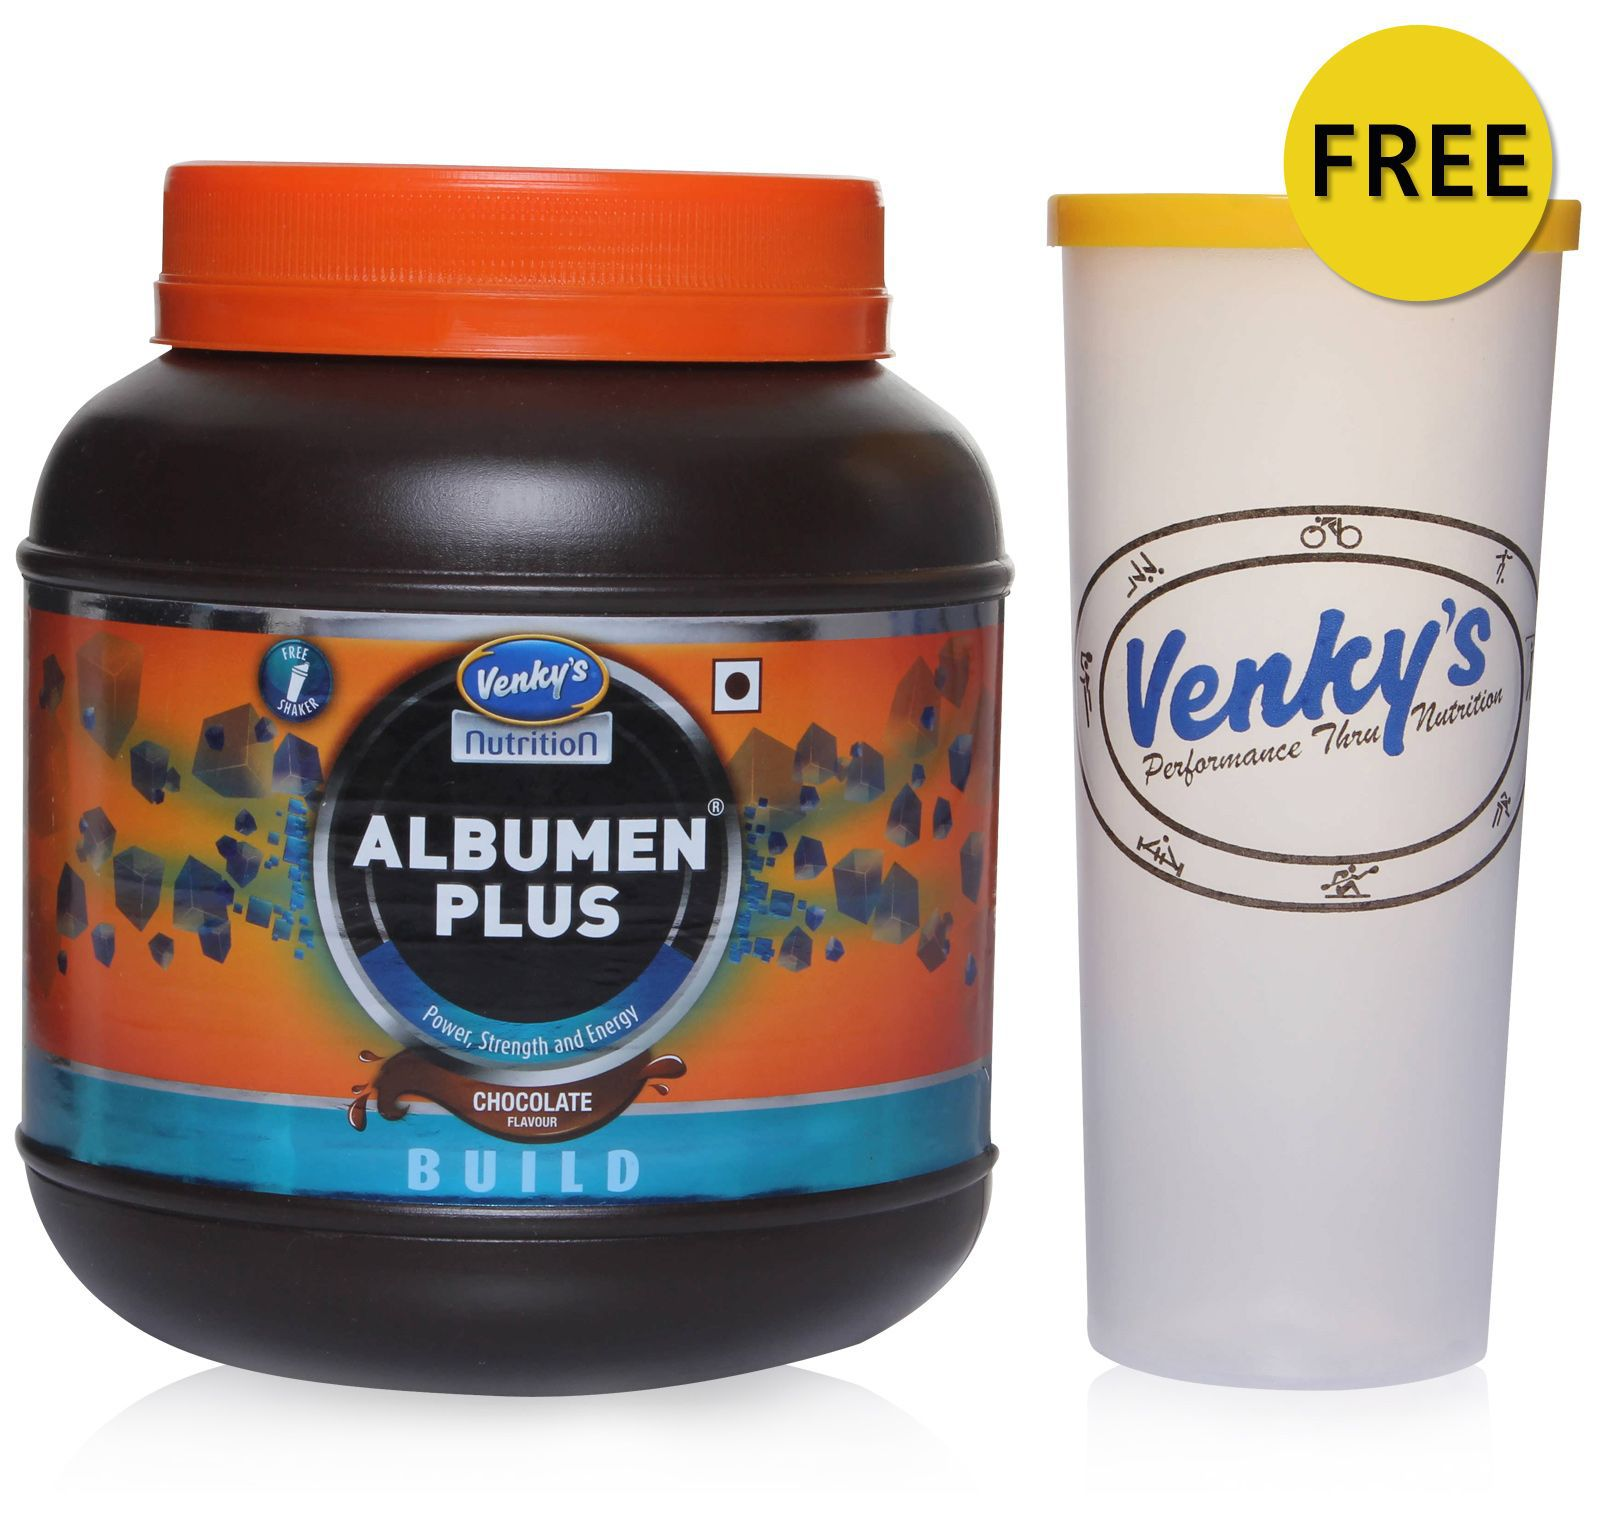 Venky's Albumen Plus 1 kg Chocolate with Free Shaker